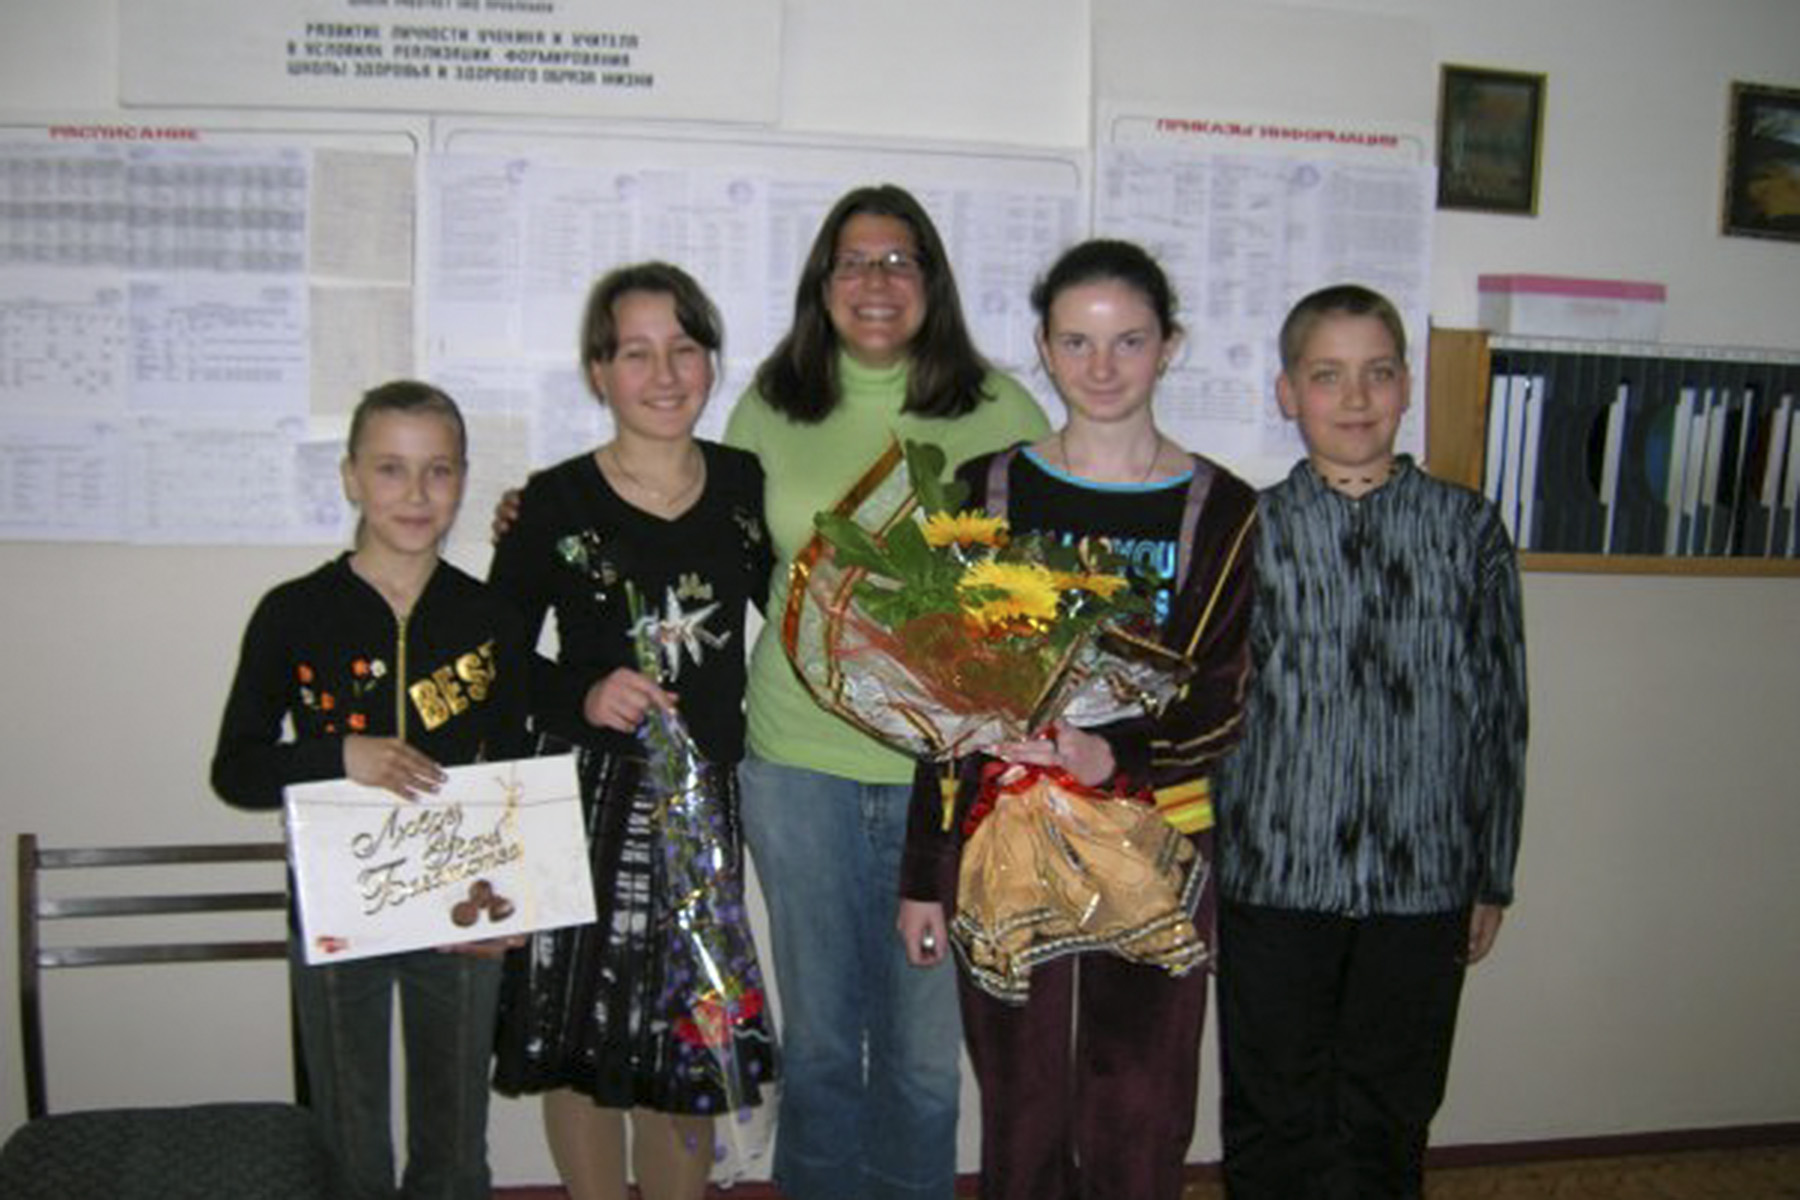 Jessy Teickenson â04 poses with her students in Armyansk, Crimea. Before her service in Ukraine from 2005 to 2007, Teickenson served in Uzbekistan.